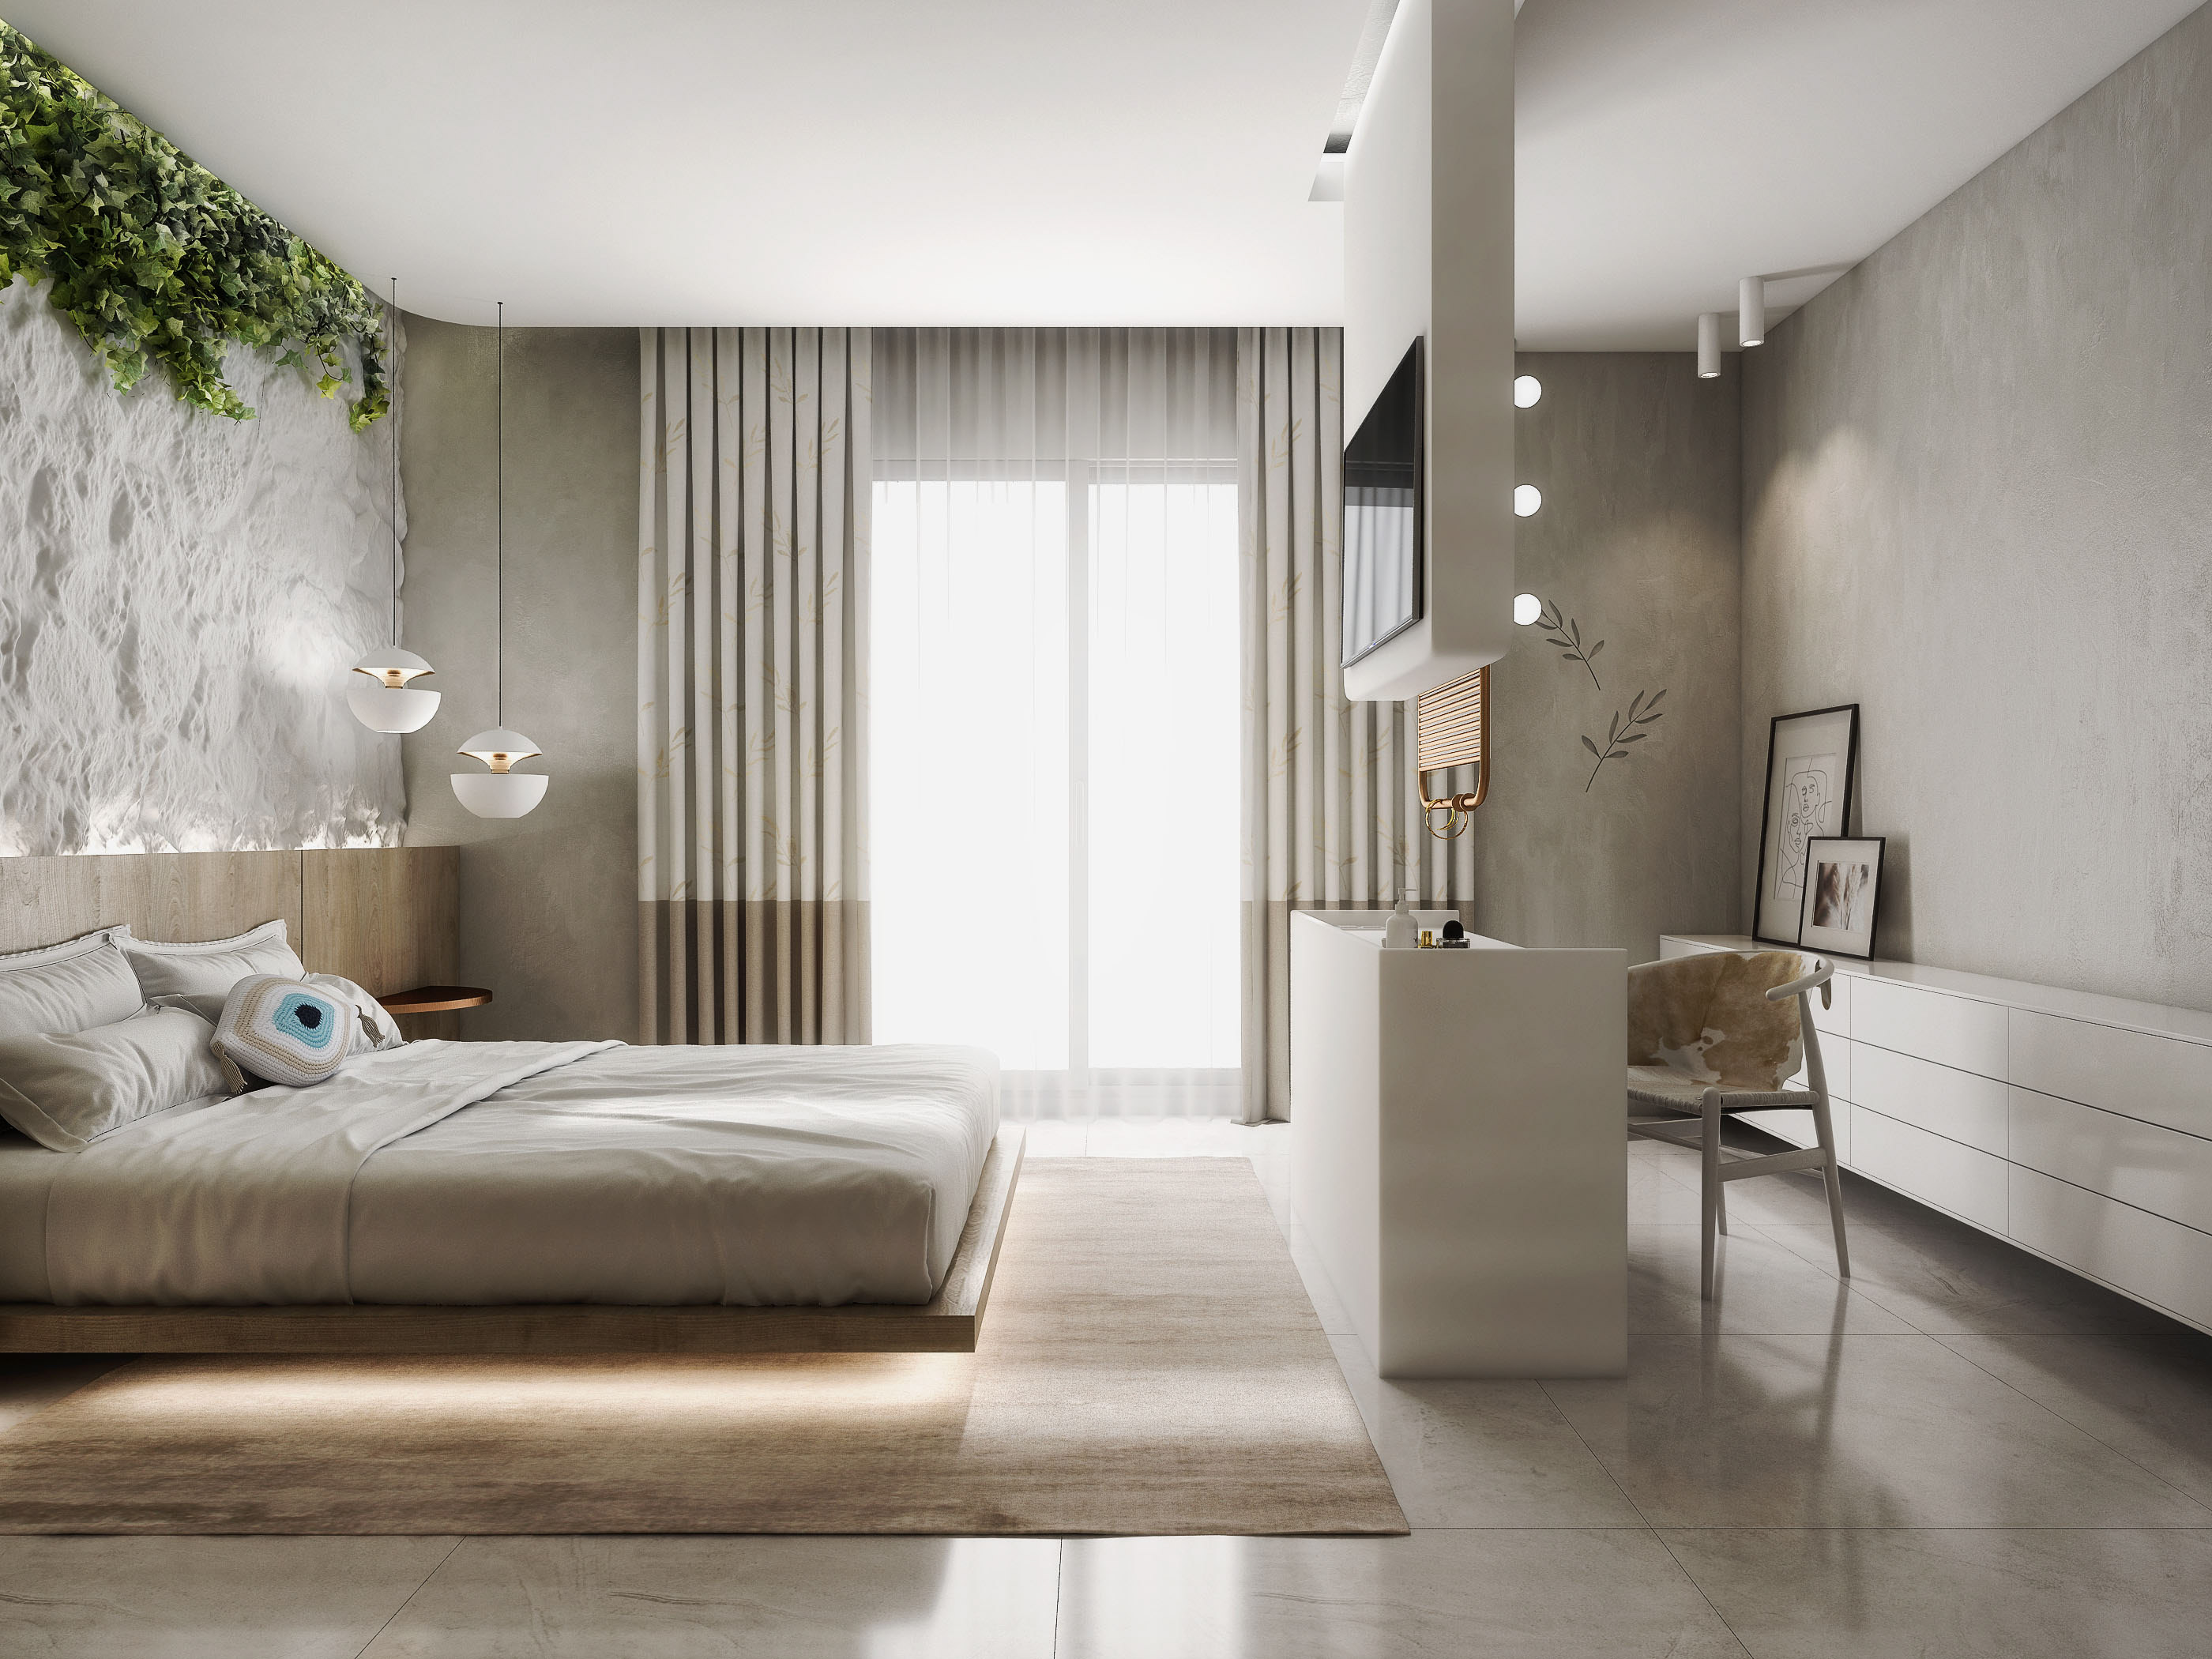 Apartment in Rhodes, Greece in 3d max vray 3.0 image